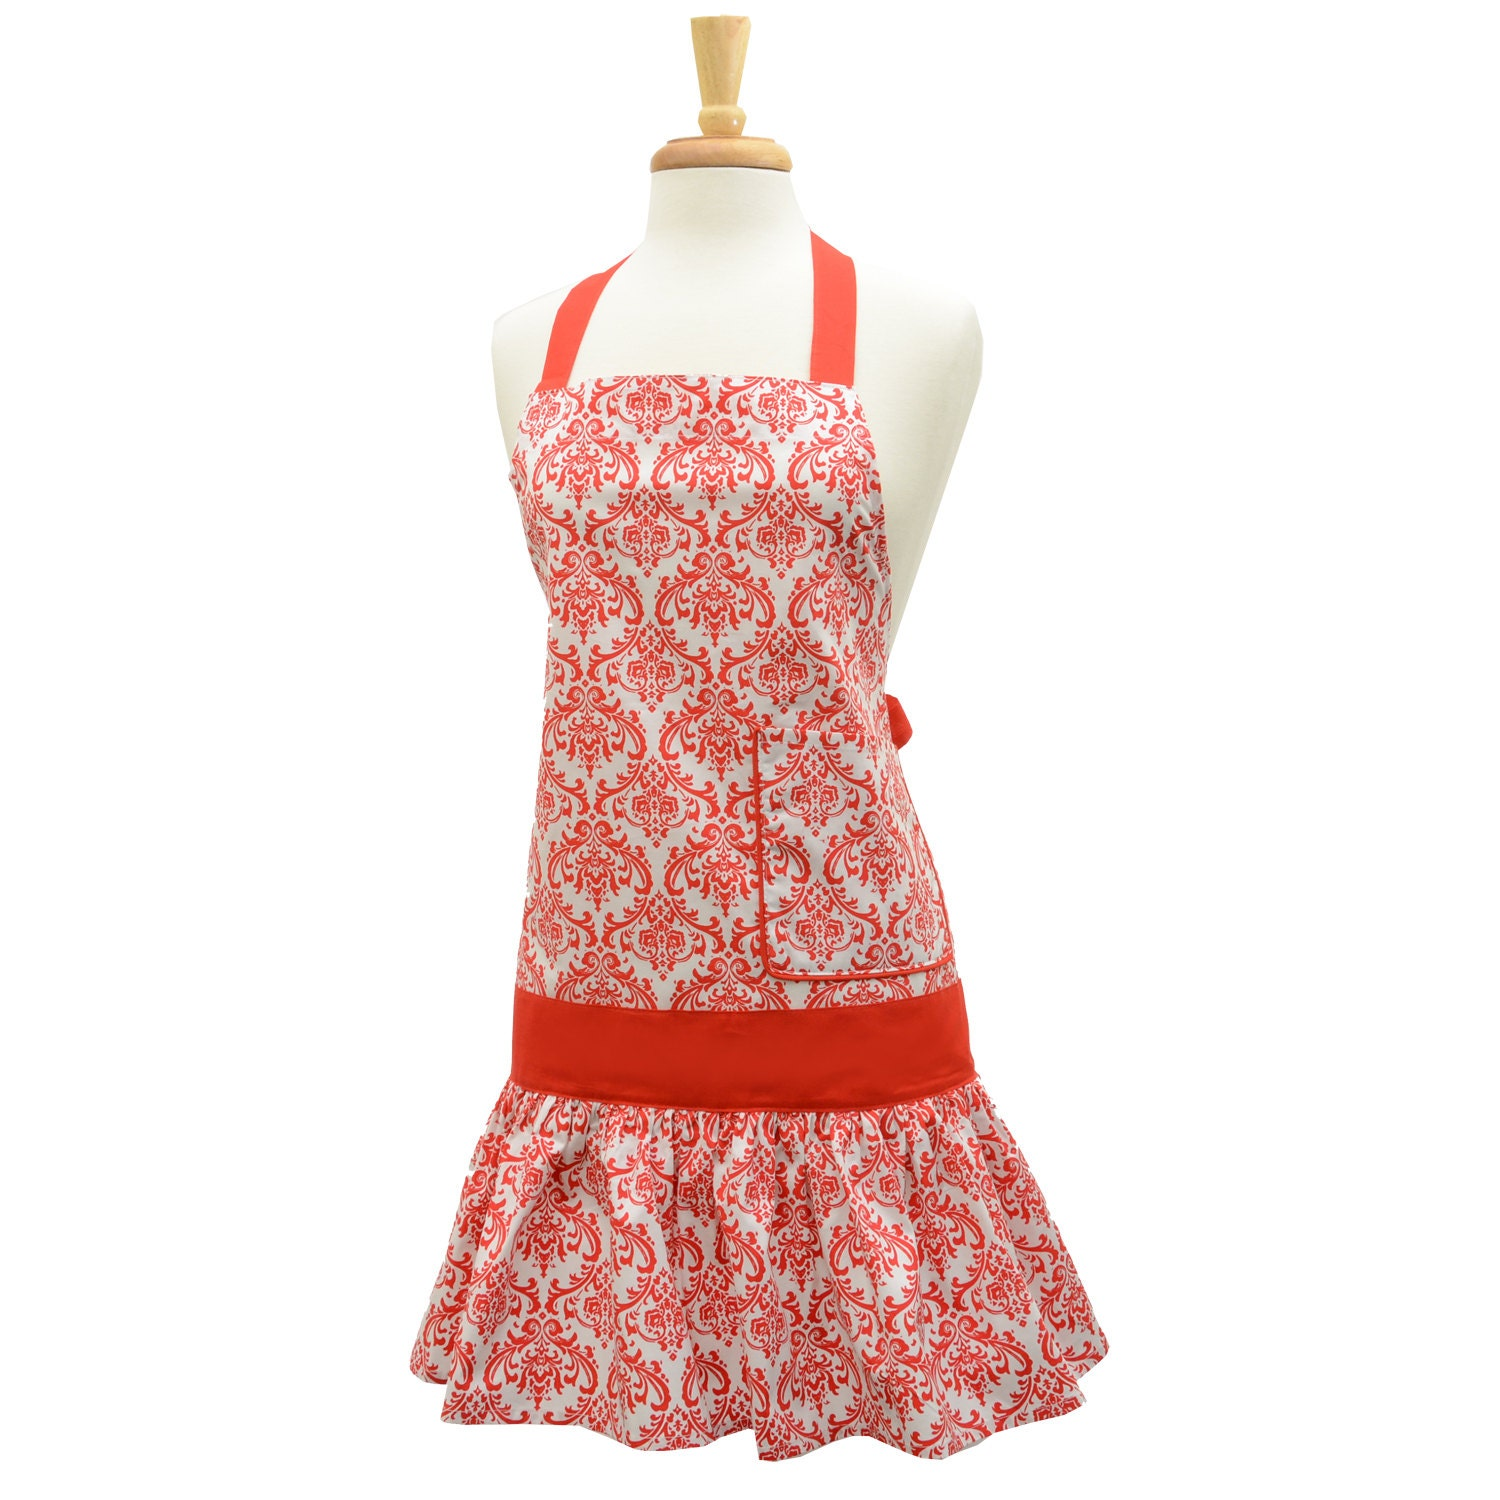 flirty aprons womens holiday aprons Buy flirty aprons women's original apron, teal moroccan metallic: aprons - amazoncom ✓ free delivery possible on eligible purchases.